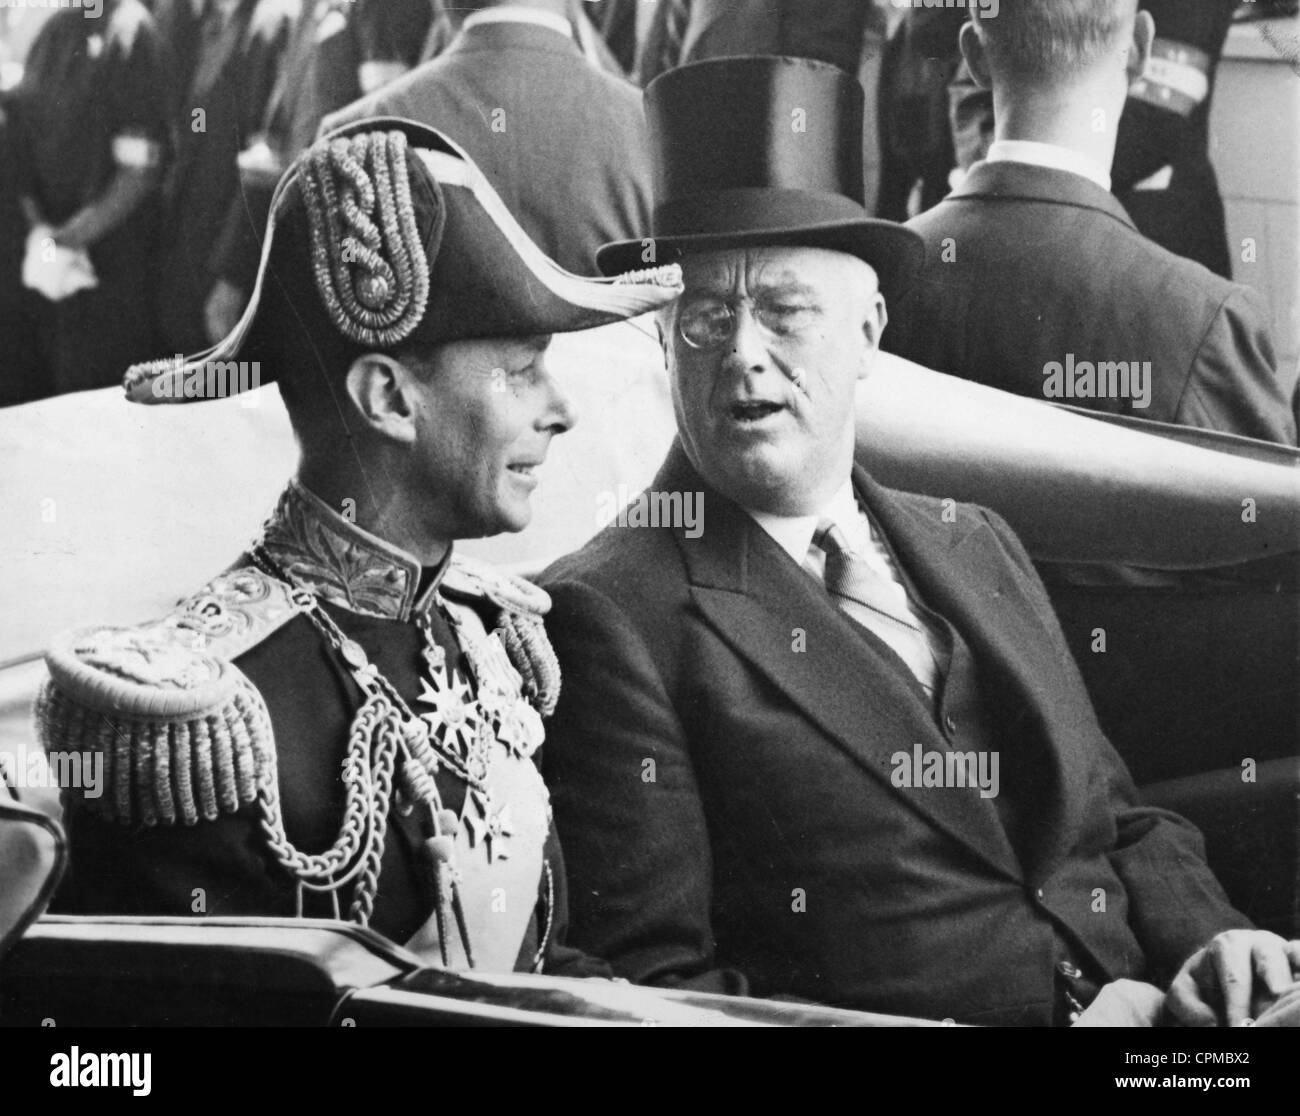 Franklin D Roosevelt With George VI Of Great Britain 1939